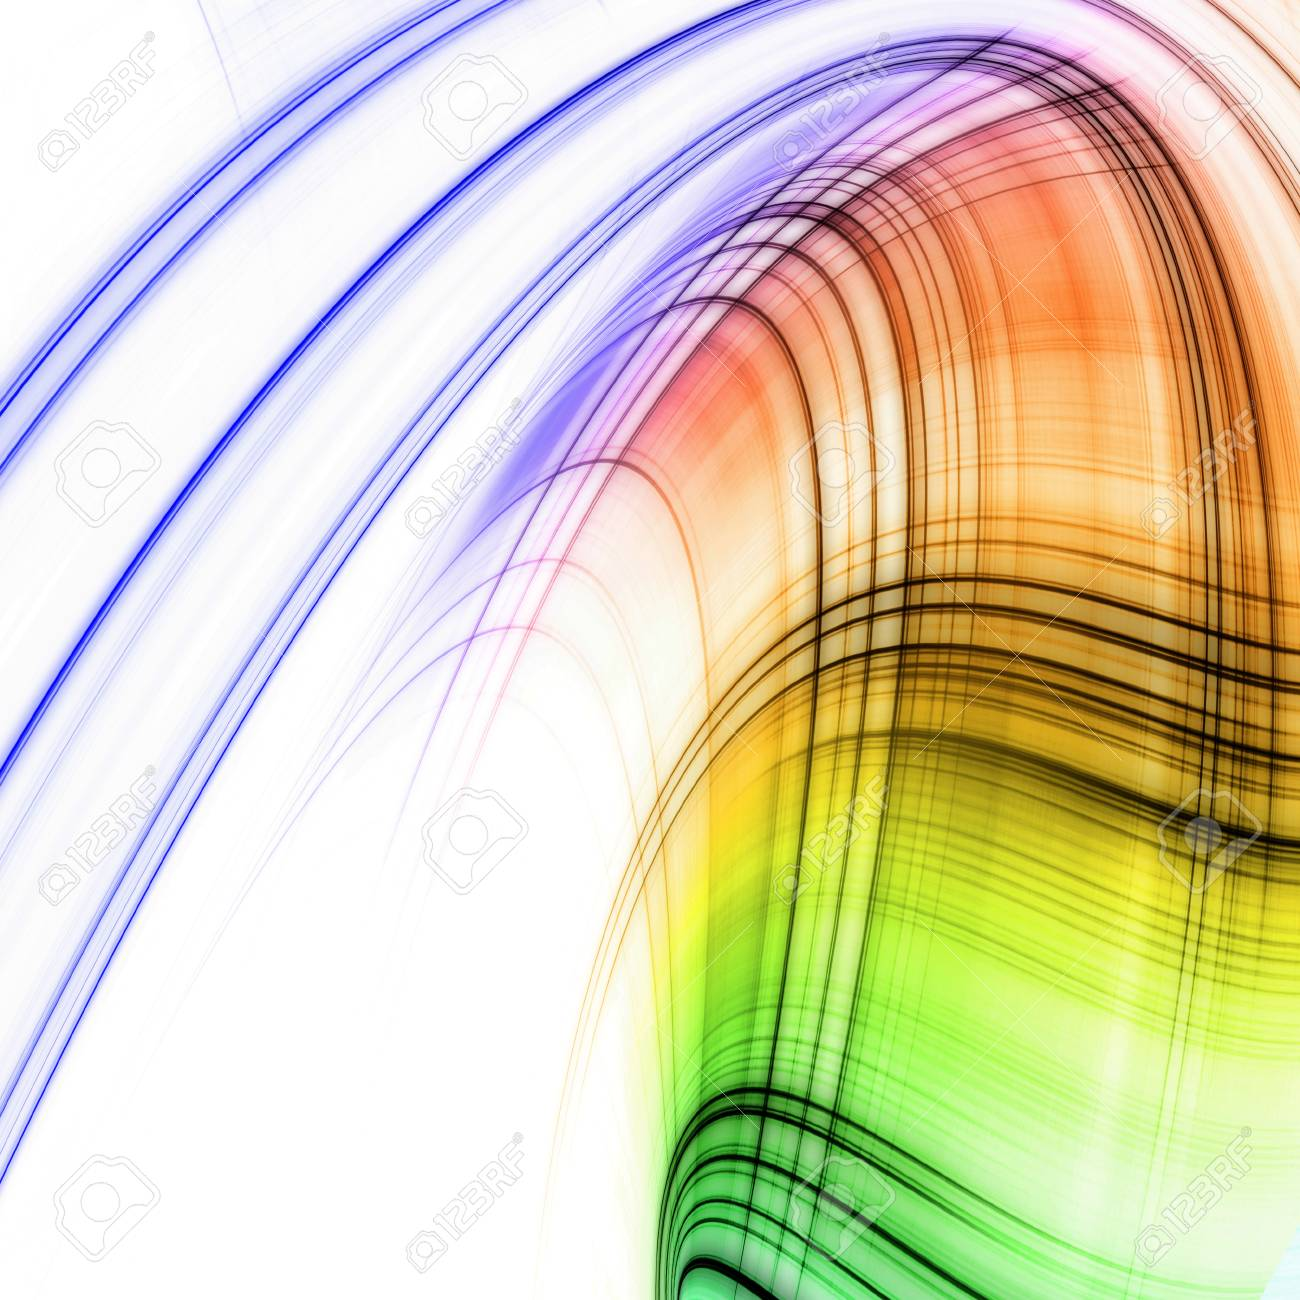 Abstract elegant background design with space for your text Stock Photo - 12757850